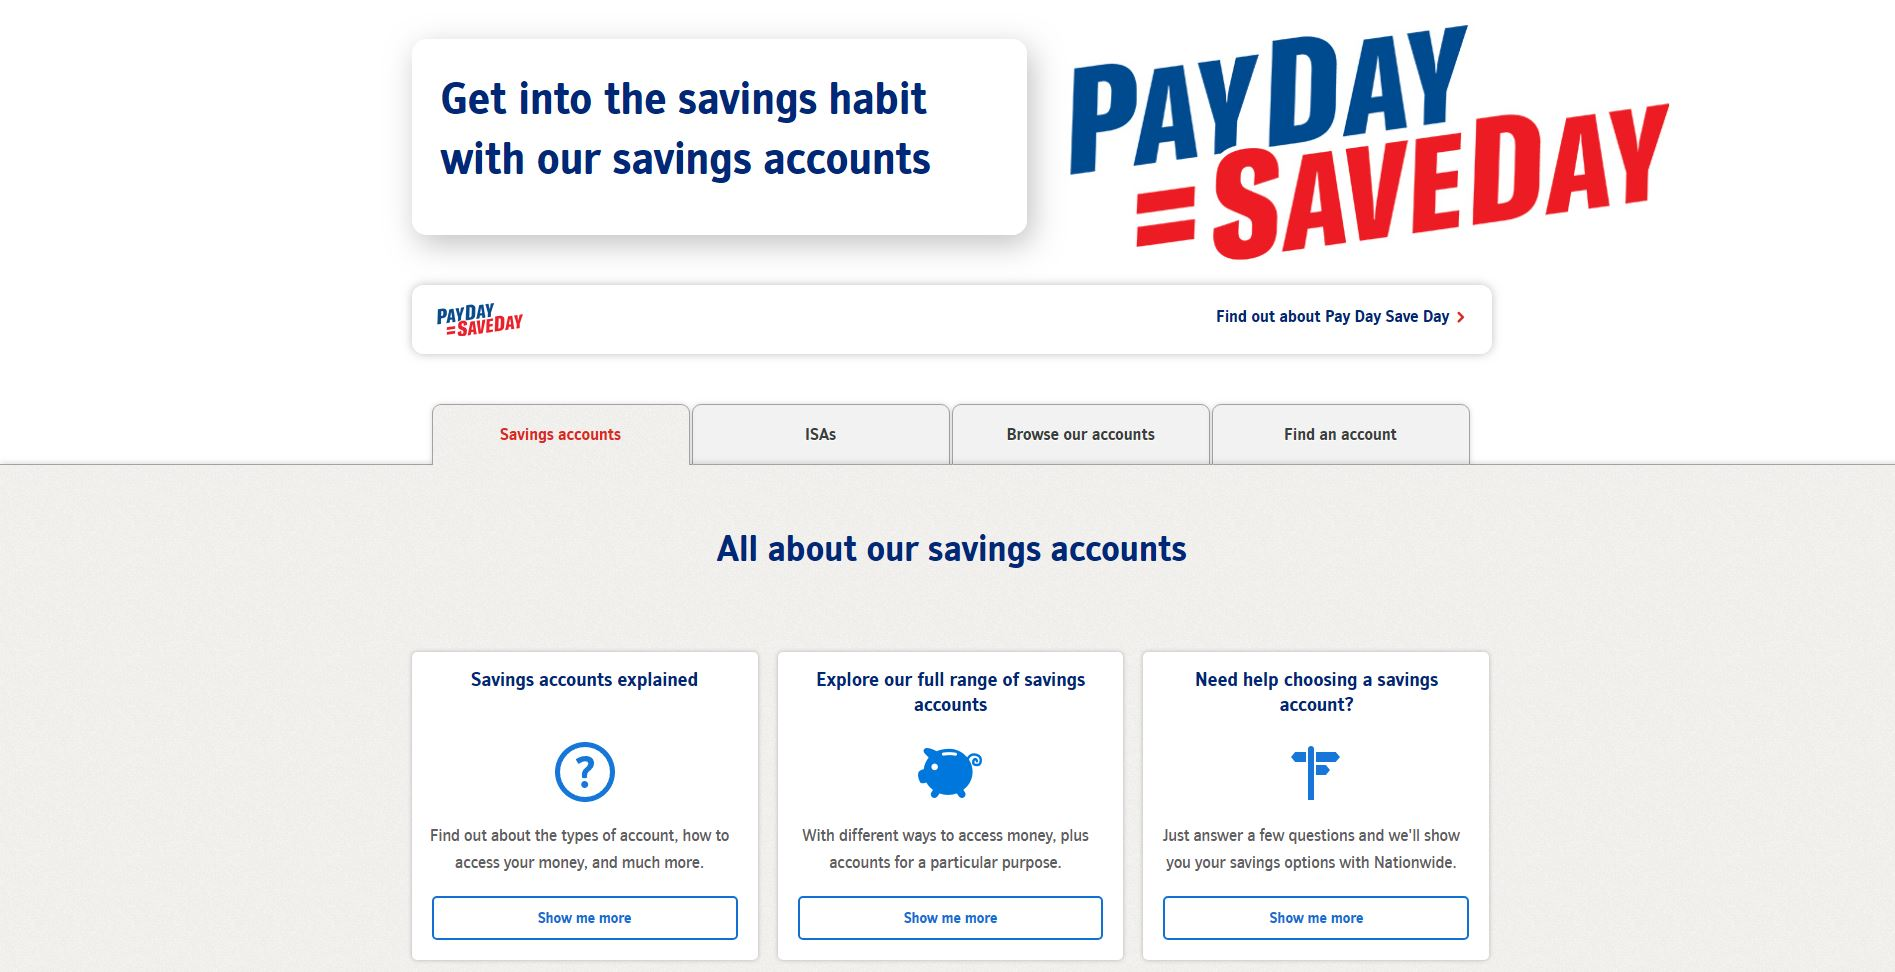 Nationwide's savings accounts information